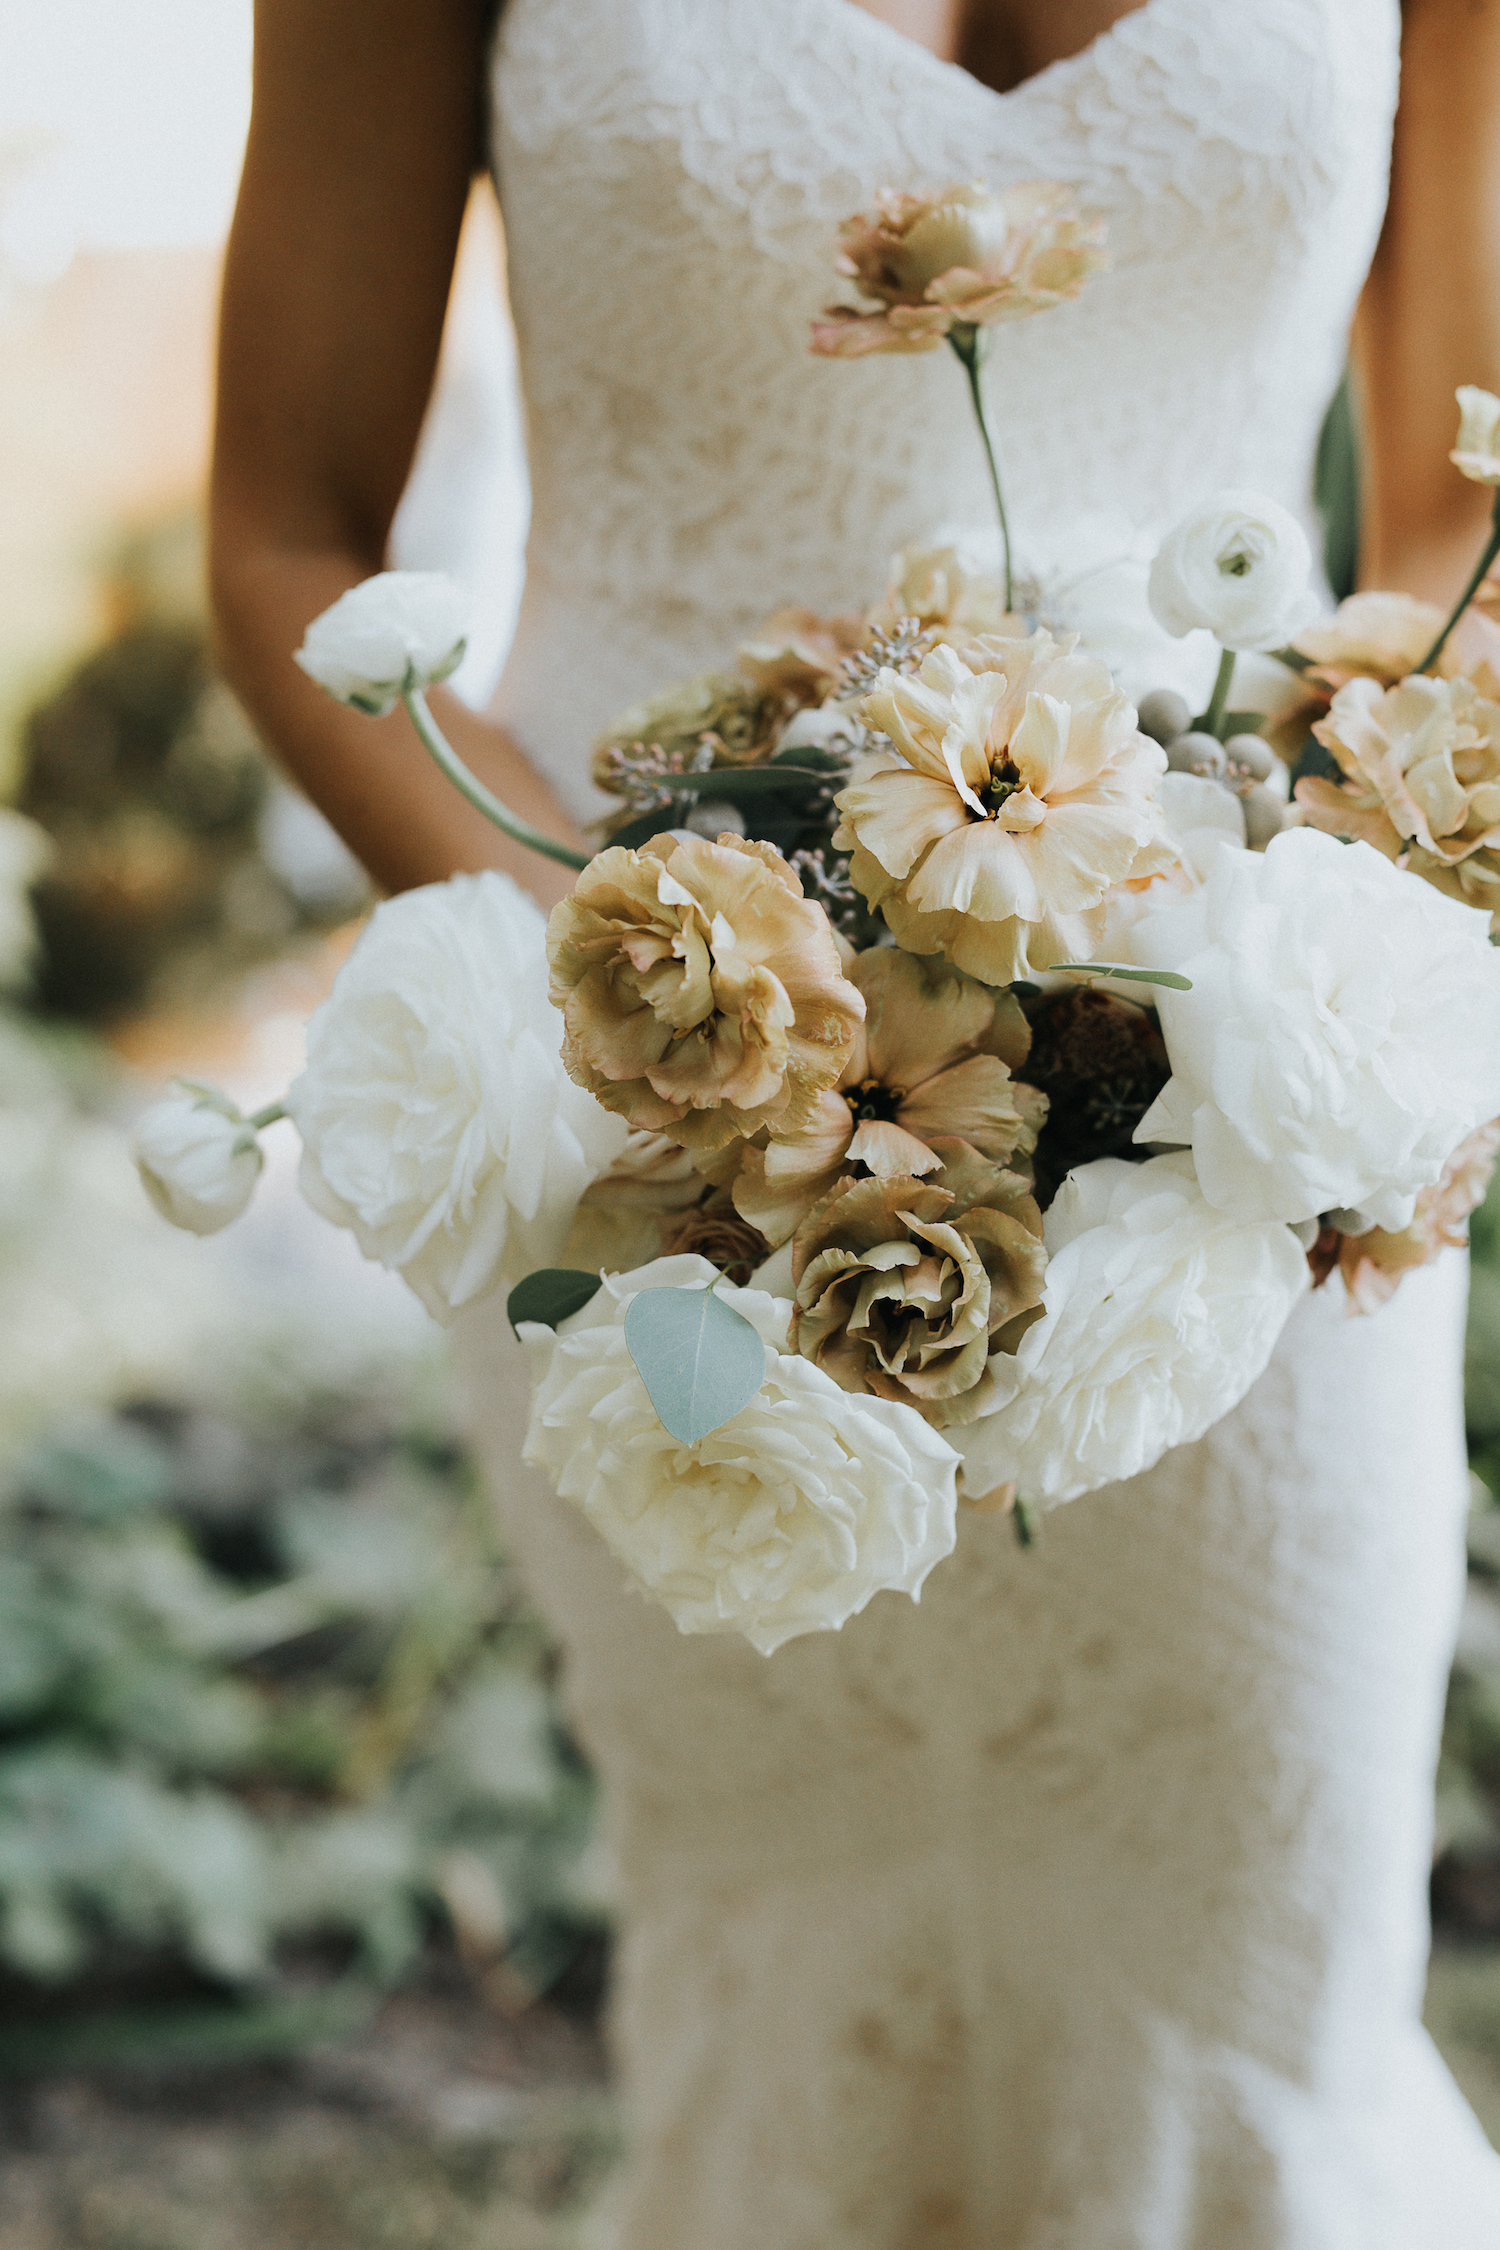 Wild Bloom Floral - Rachel Birkhofer Photography - Jessica and Phil - Real Wedding - Seattle 21.jpeg